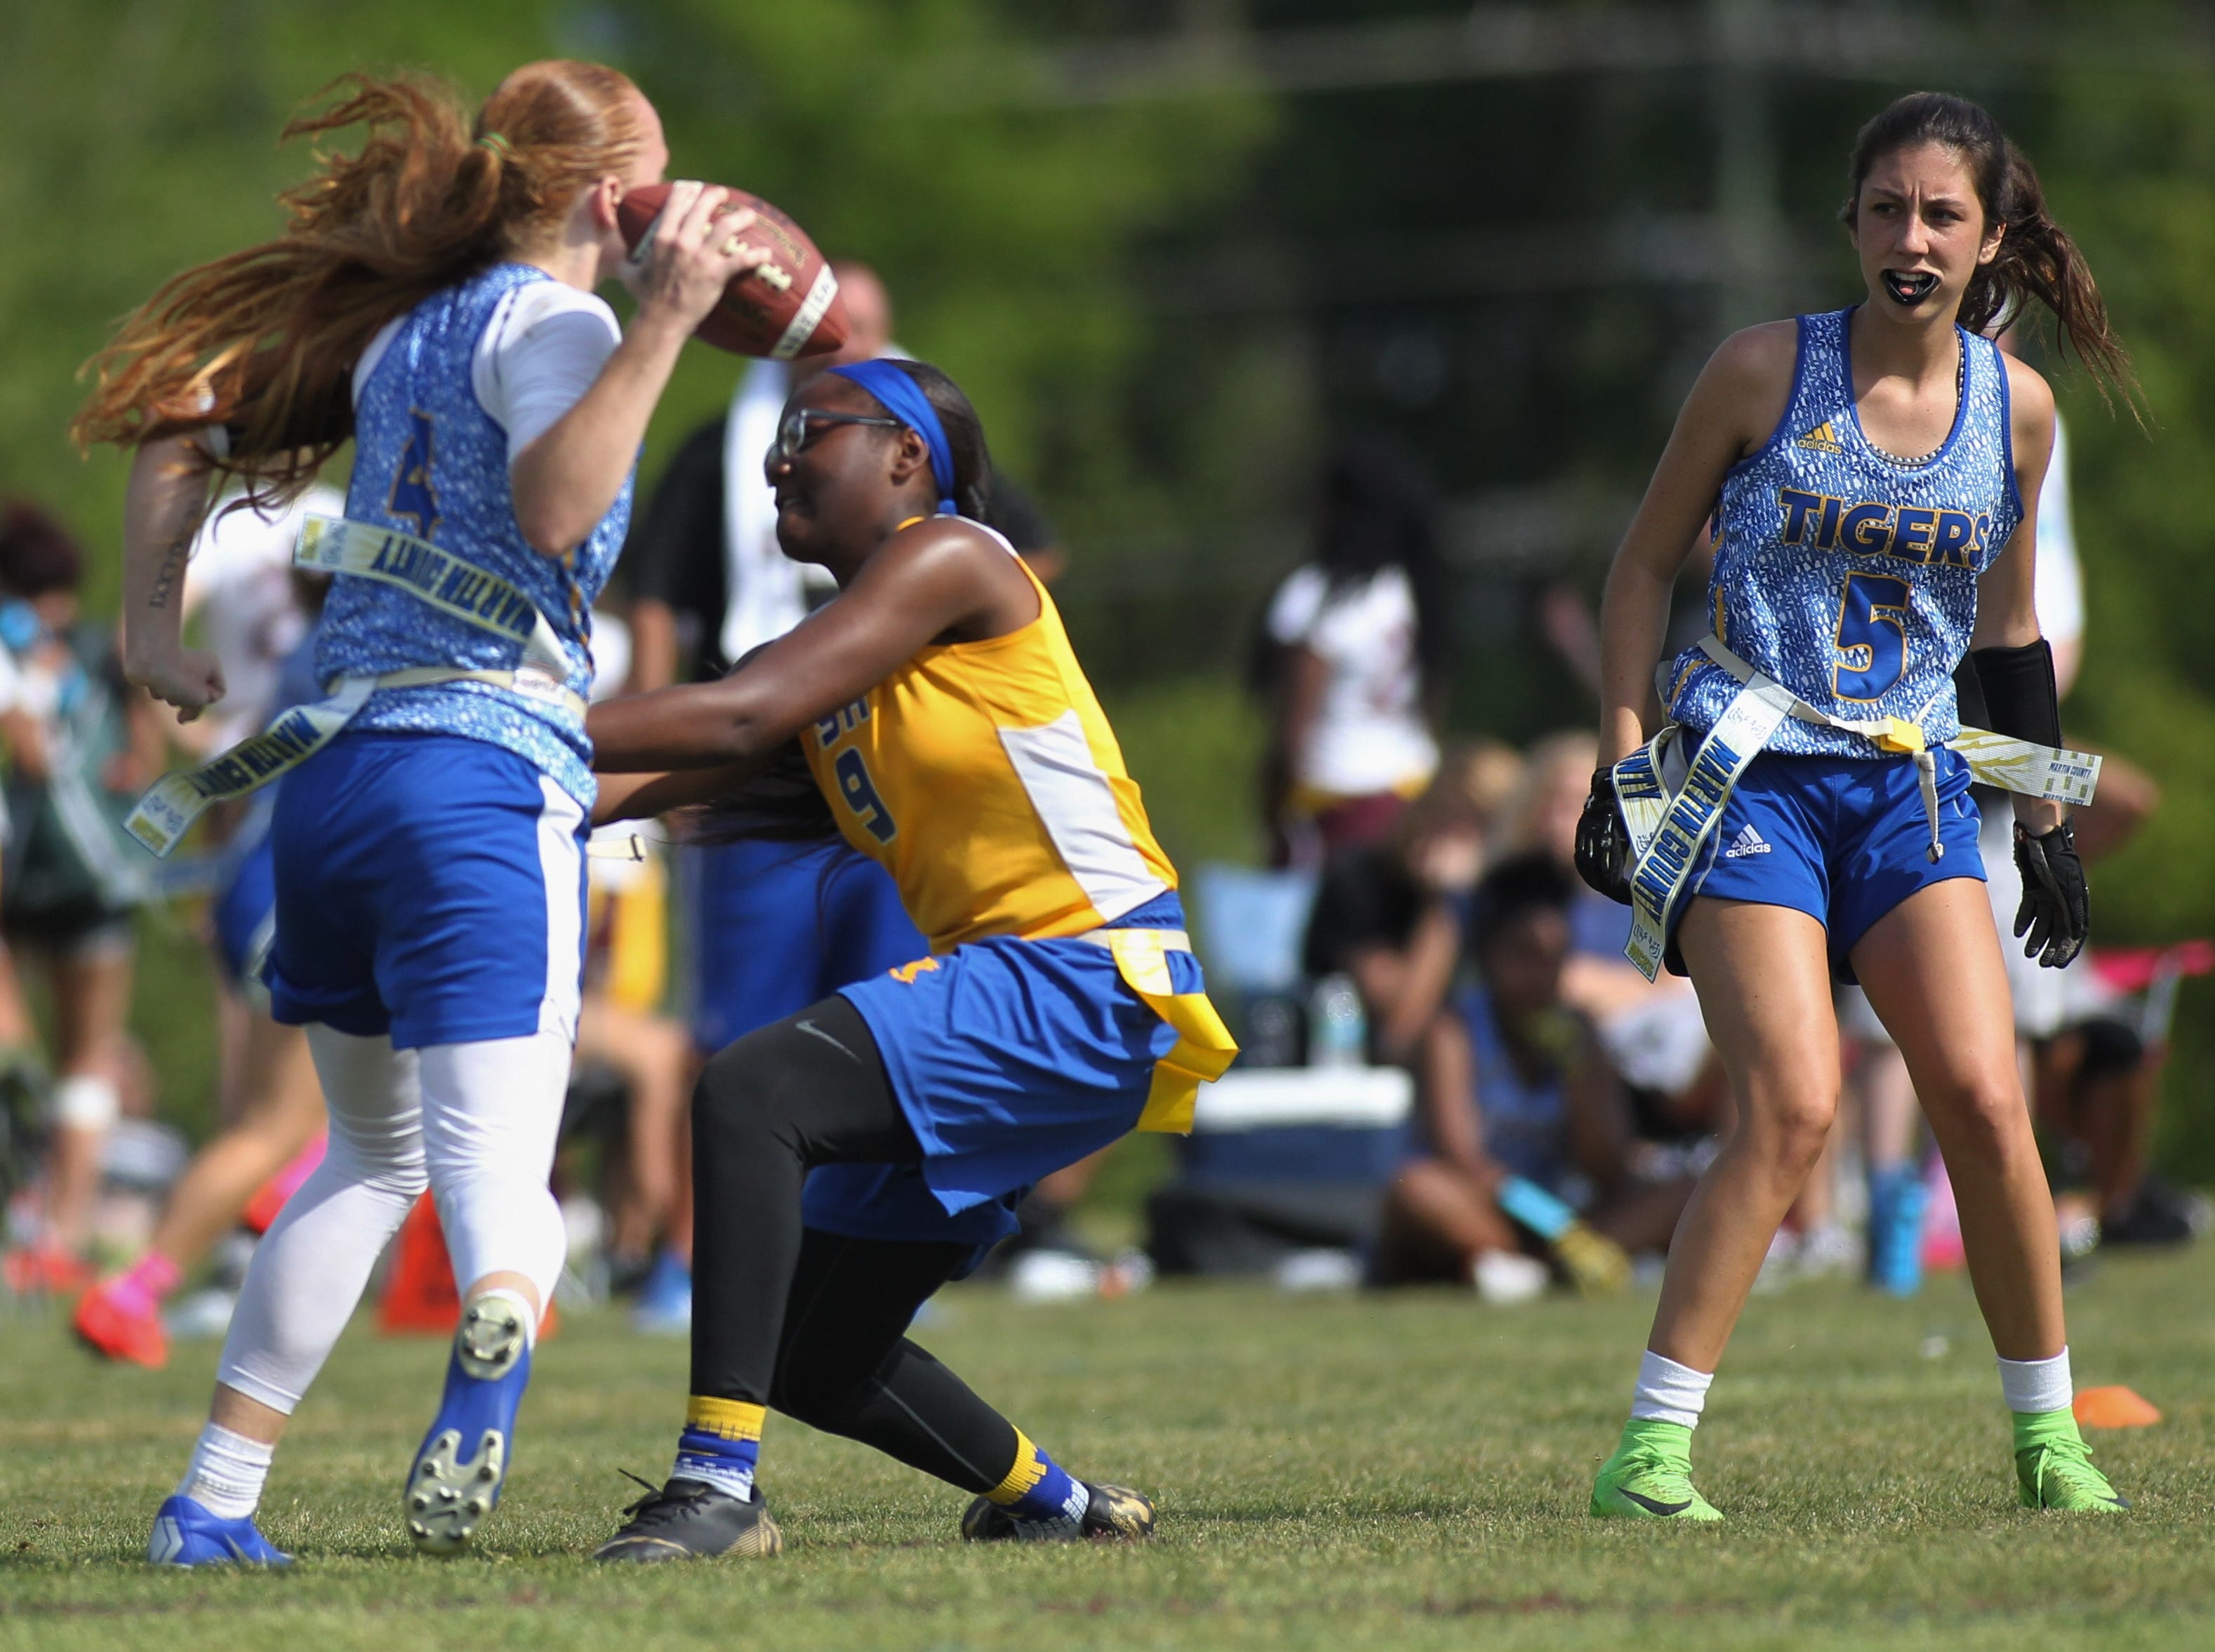 Rickards' MaKayla Brown records a sack against Martin County during the 2019 Capital City Classic flag football tournament at the FSU Rec SportsPlex on April 6, 2019.